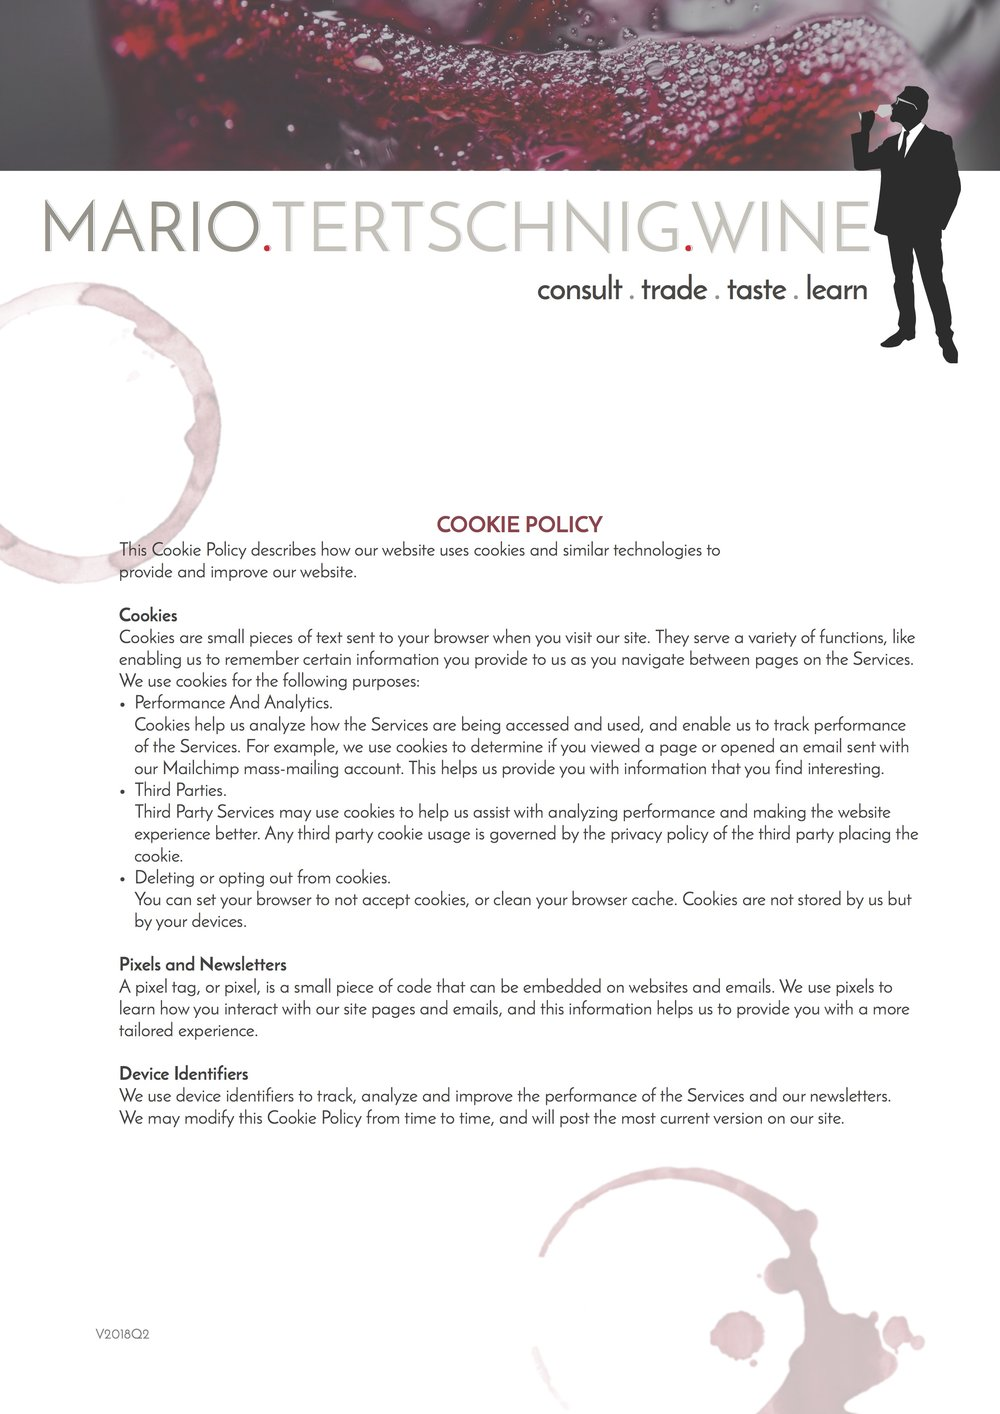 Mario.wine Cookie Policy JPG.jpg